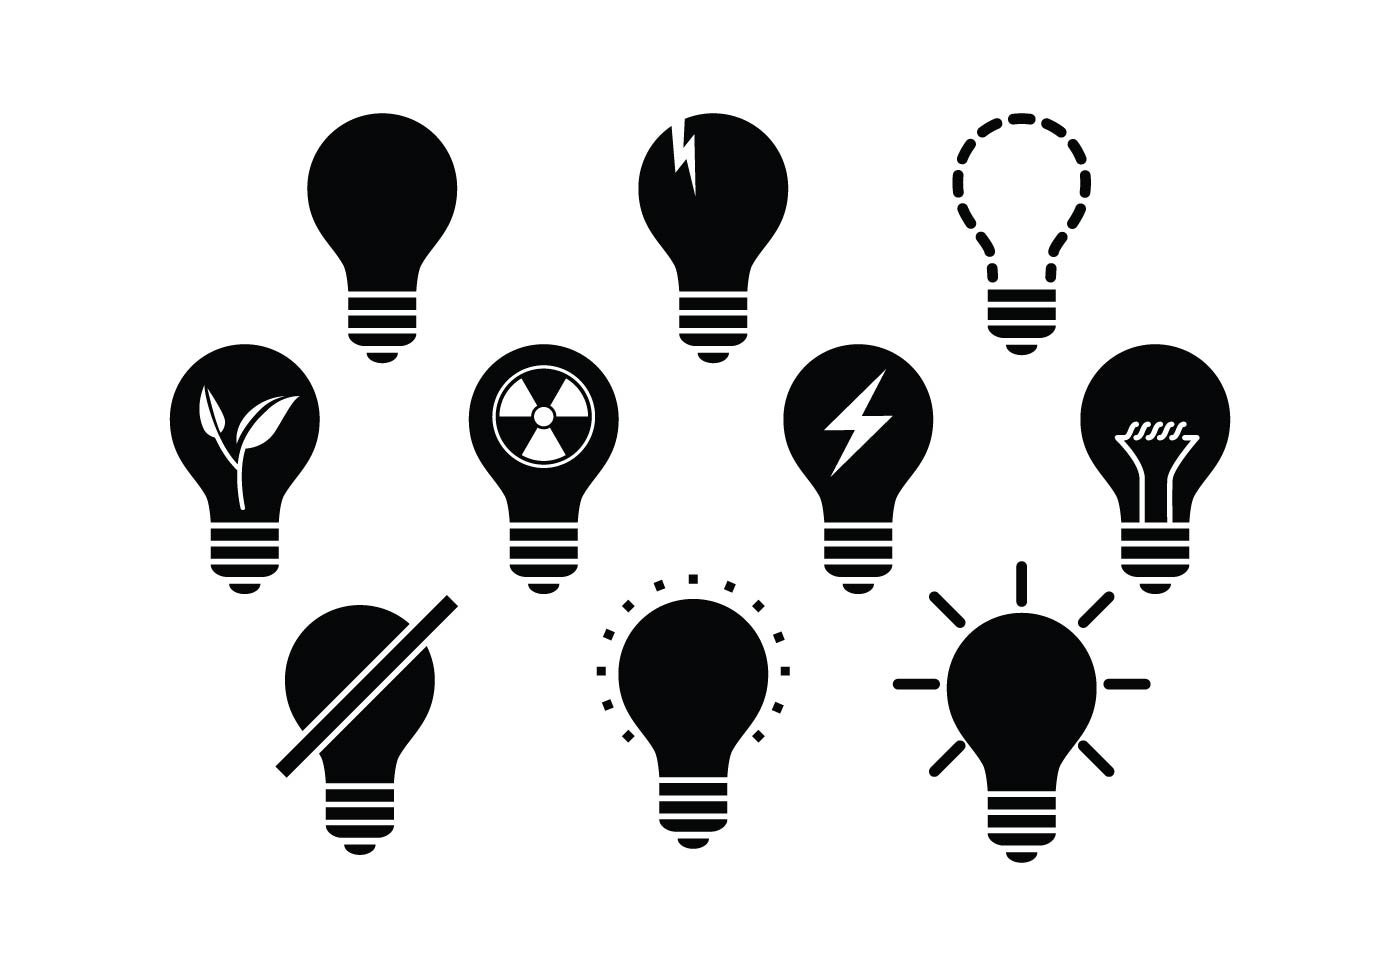 Lamps Icon Vector